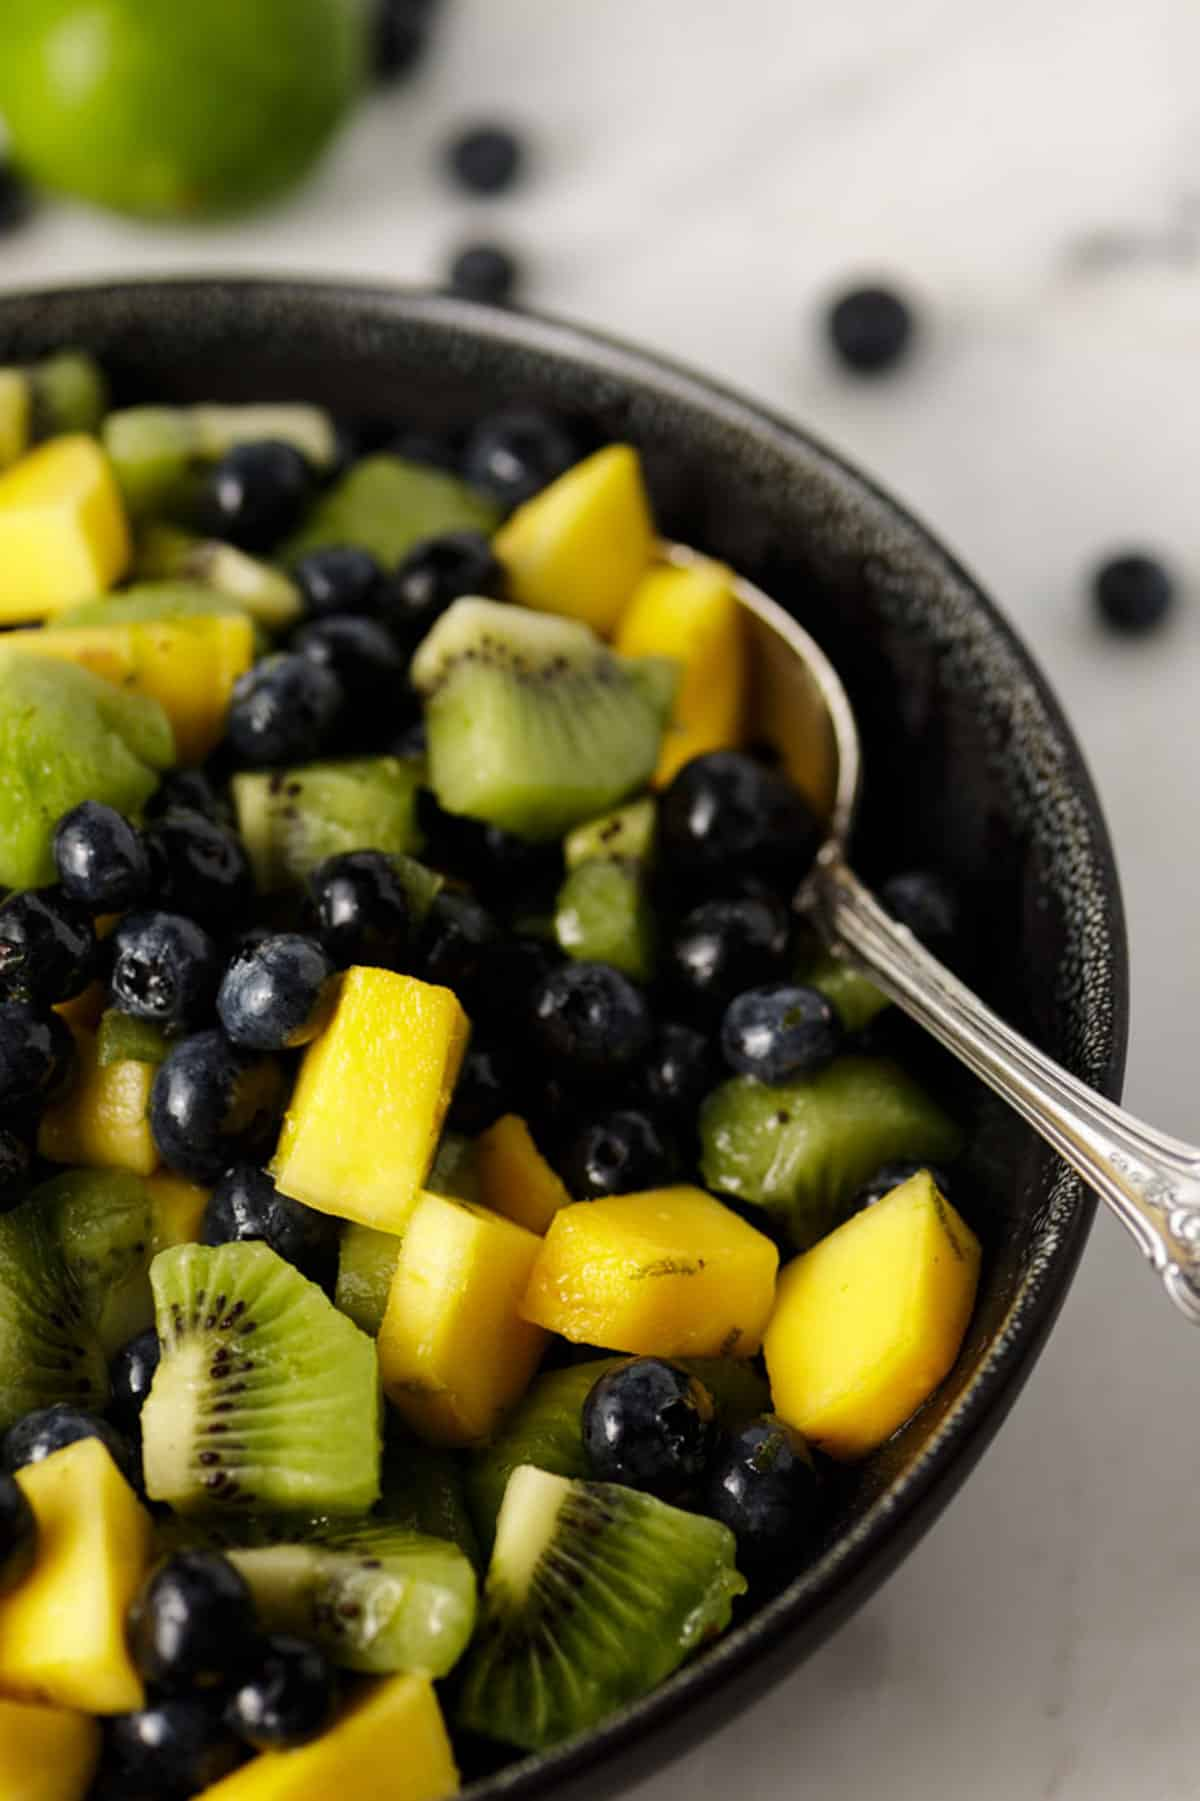 A fresh summer salad with blueberries and mango in a black bowl.